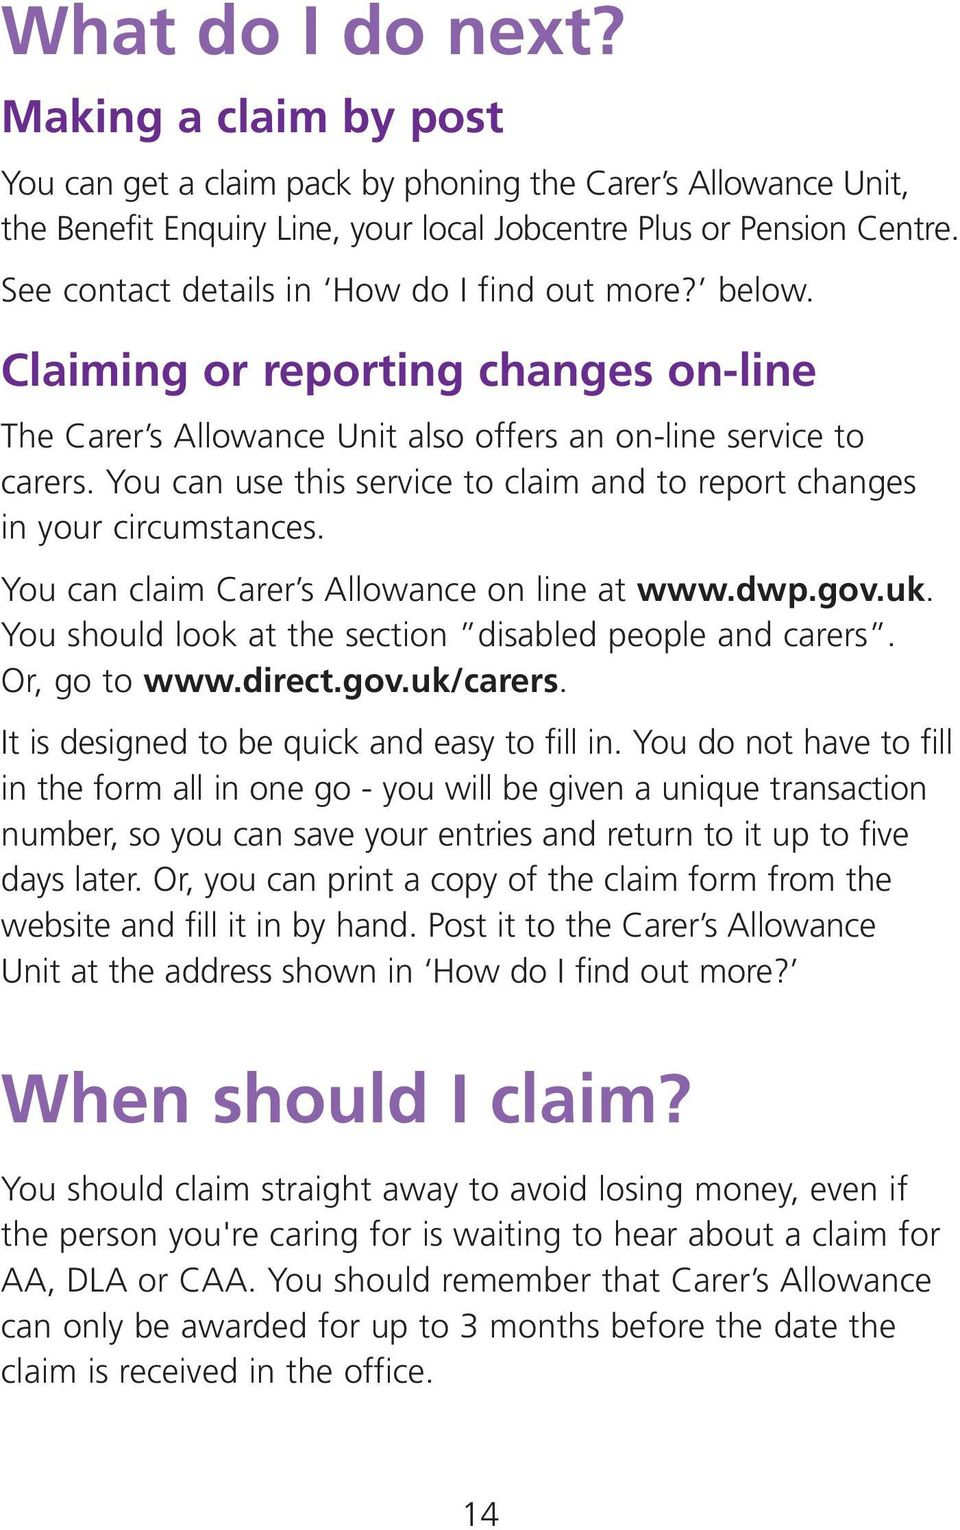 You can use this service to claim and to report changes in your circumstances. You can claim Carer s Allowance on line at www.dwp.gov.uk. You should look at the section disabled people and carers.